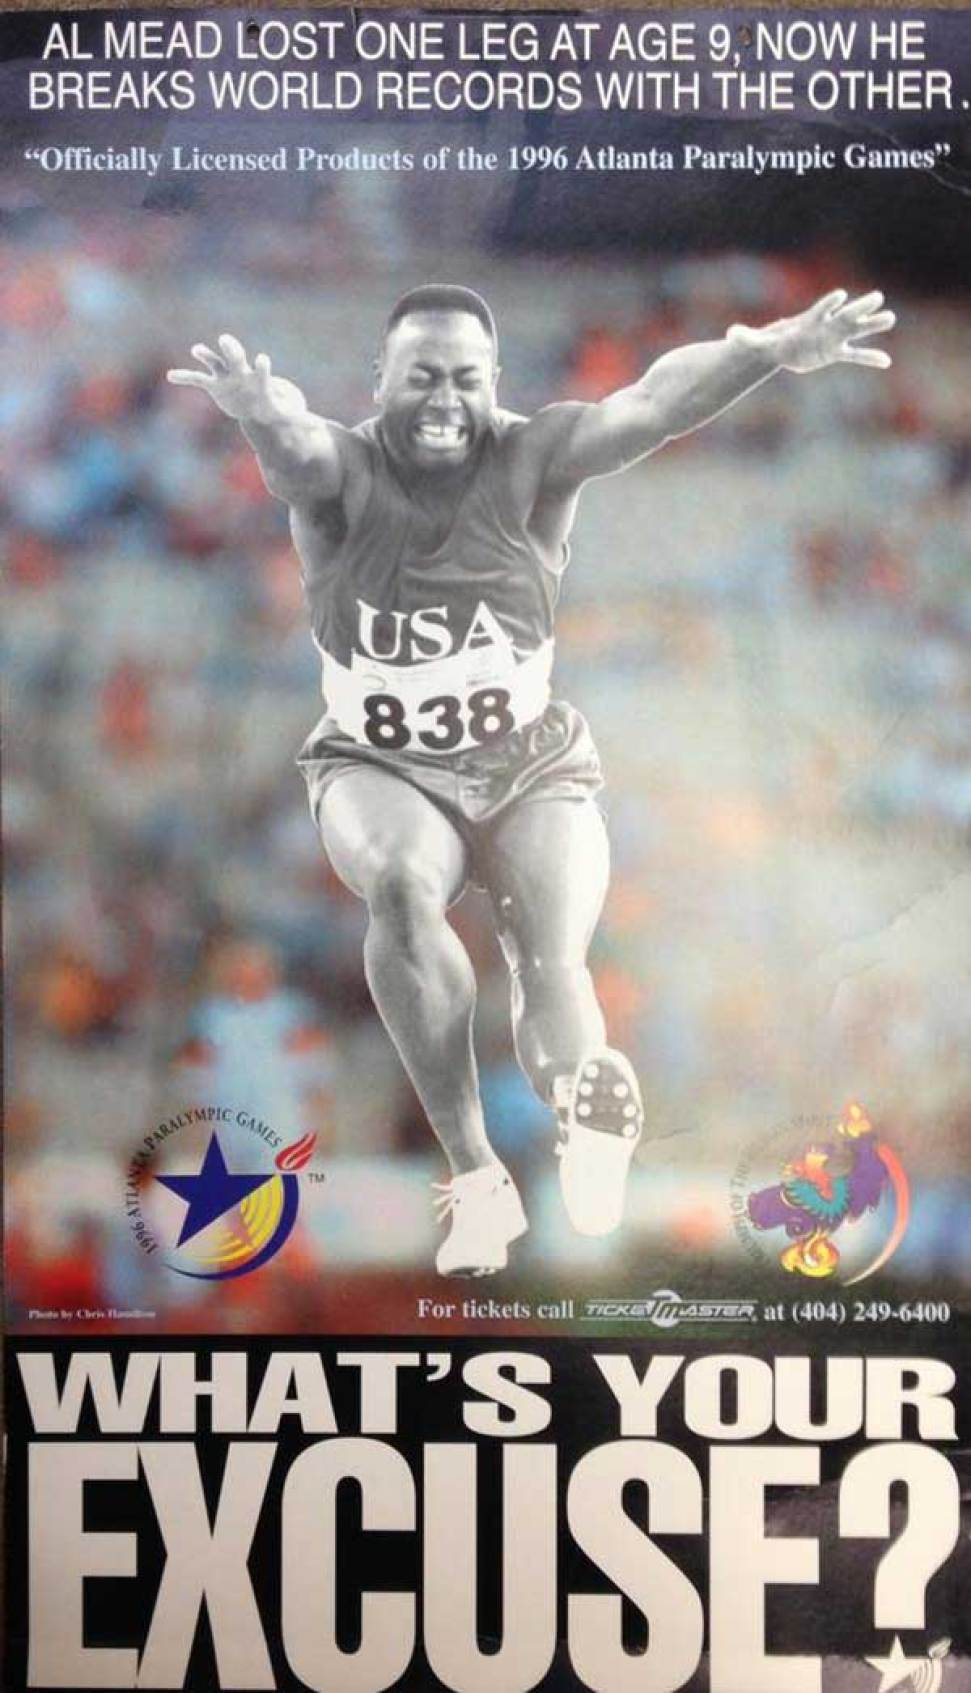 BrightHouse created this ad campaign for Atlanta 1996 Paralympic Games: Al Mead lost one leg at age 9. Now he breaks world records with the other. What's your excuse?